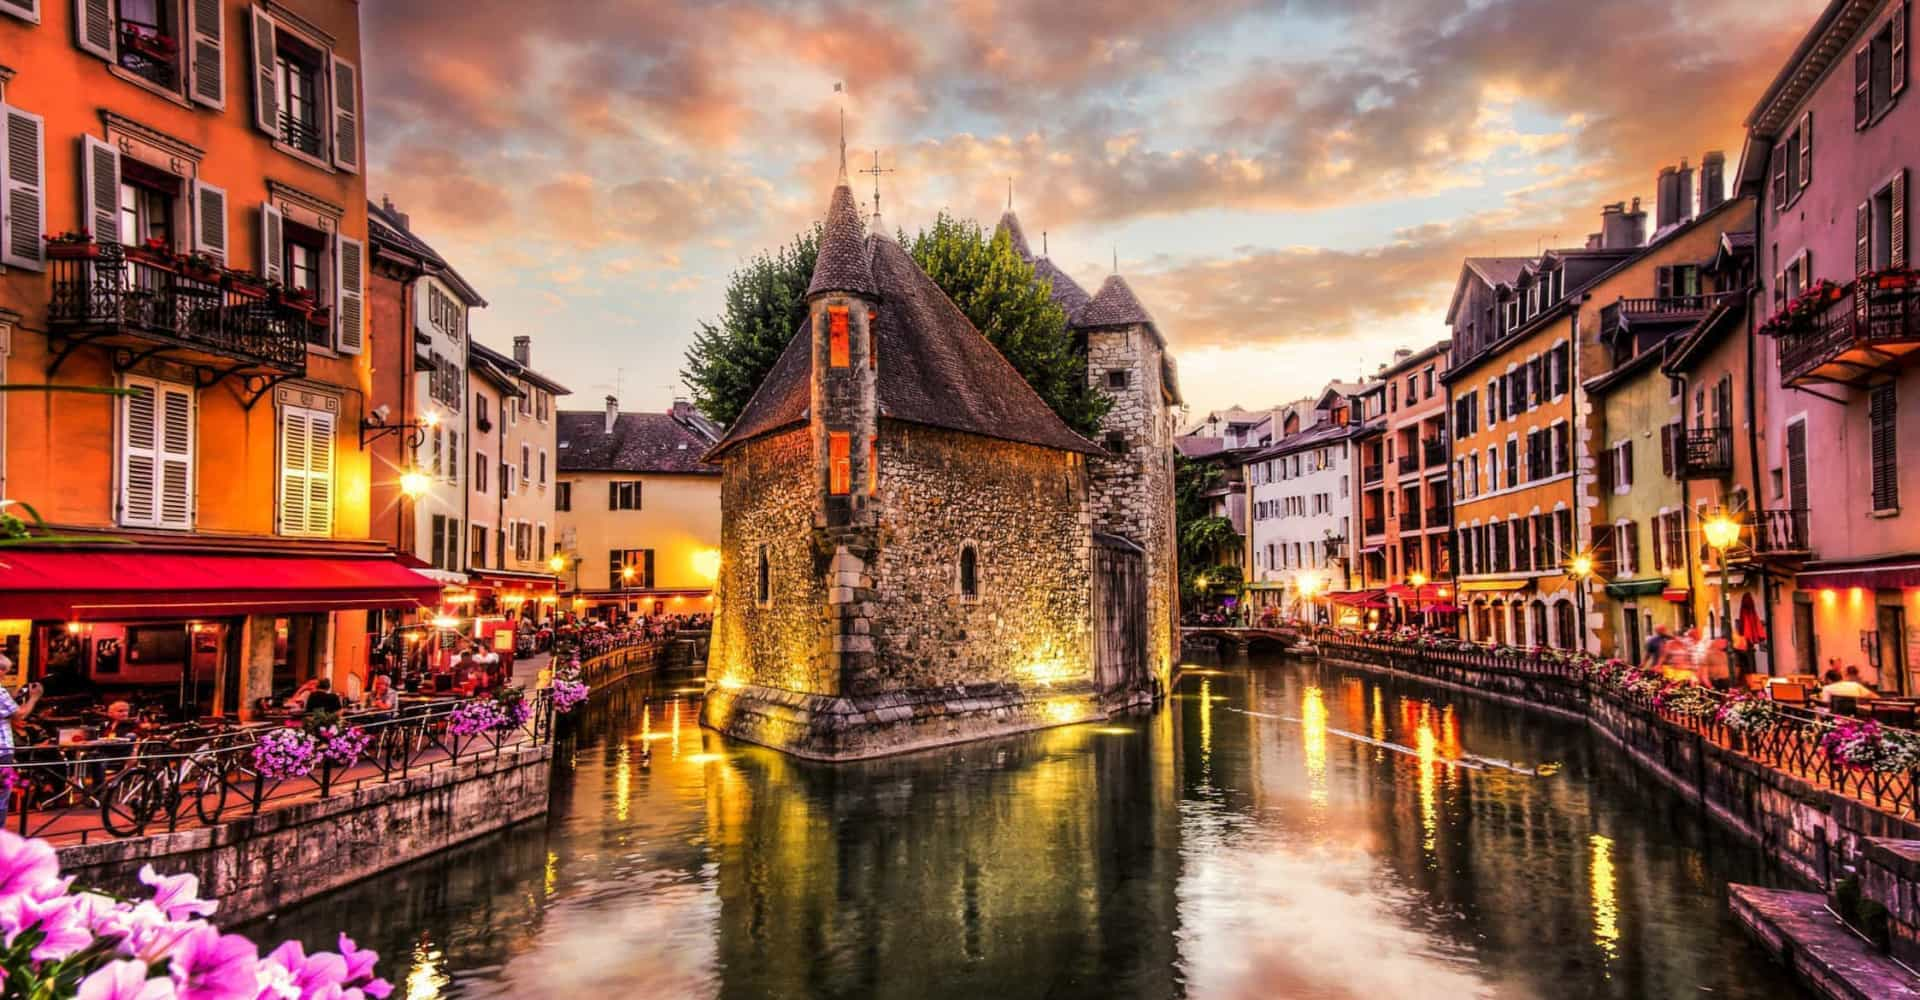 Picturesque towns in Europe you won't believe exist